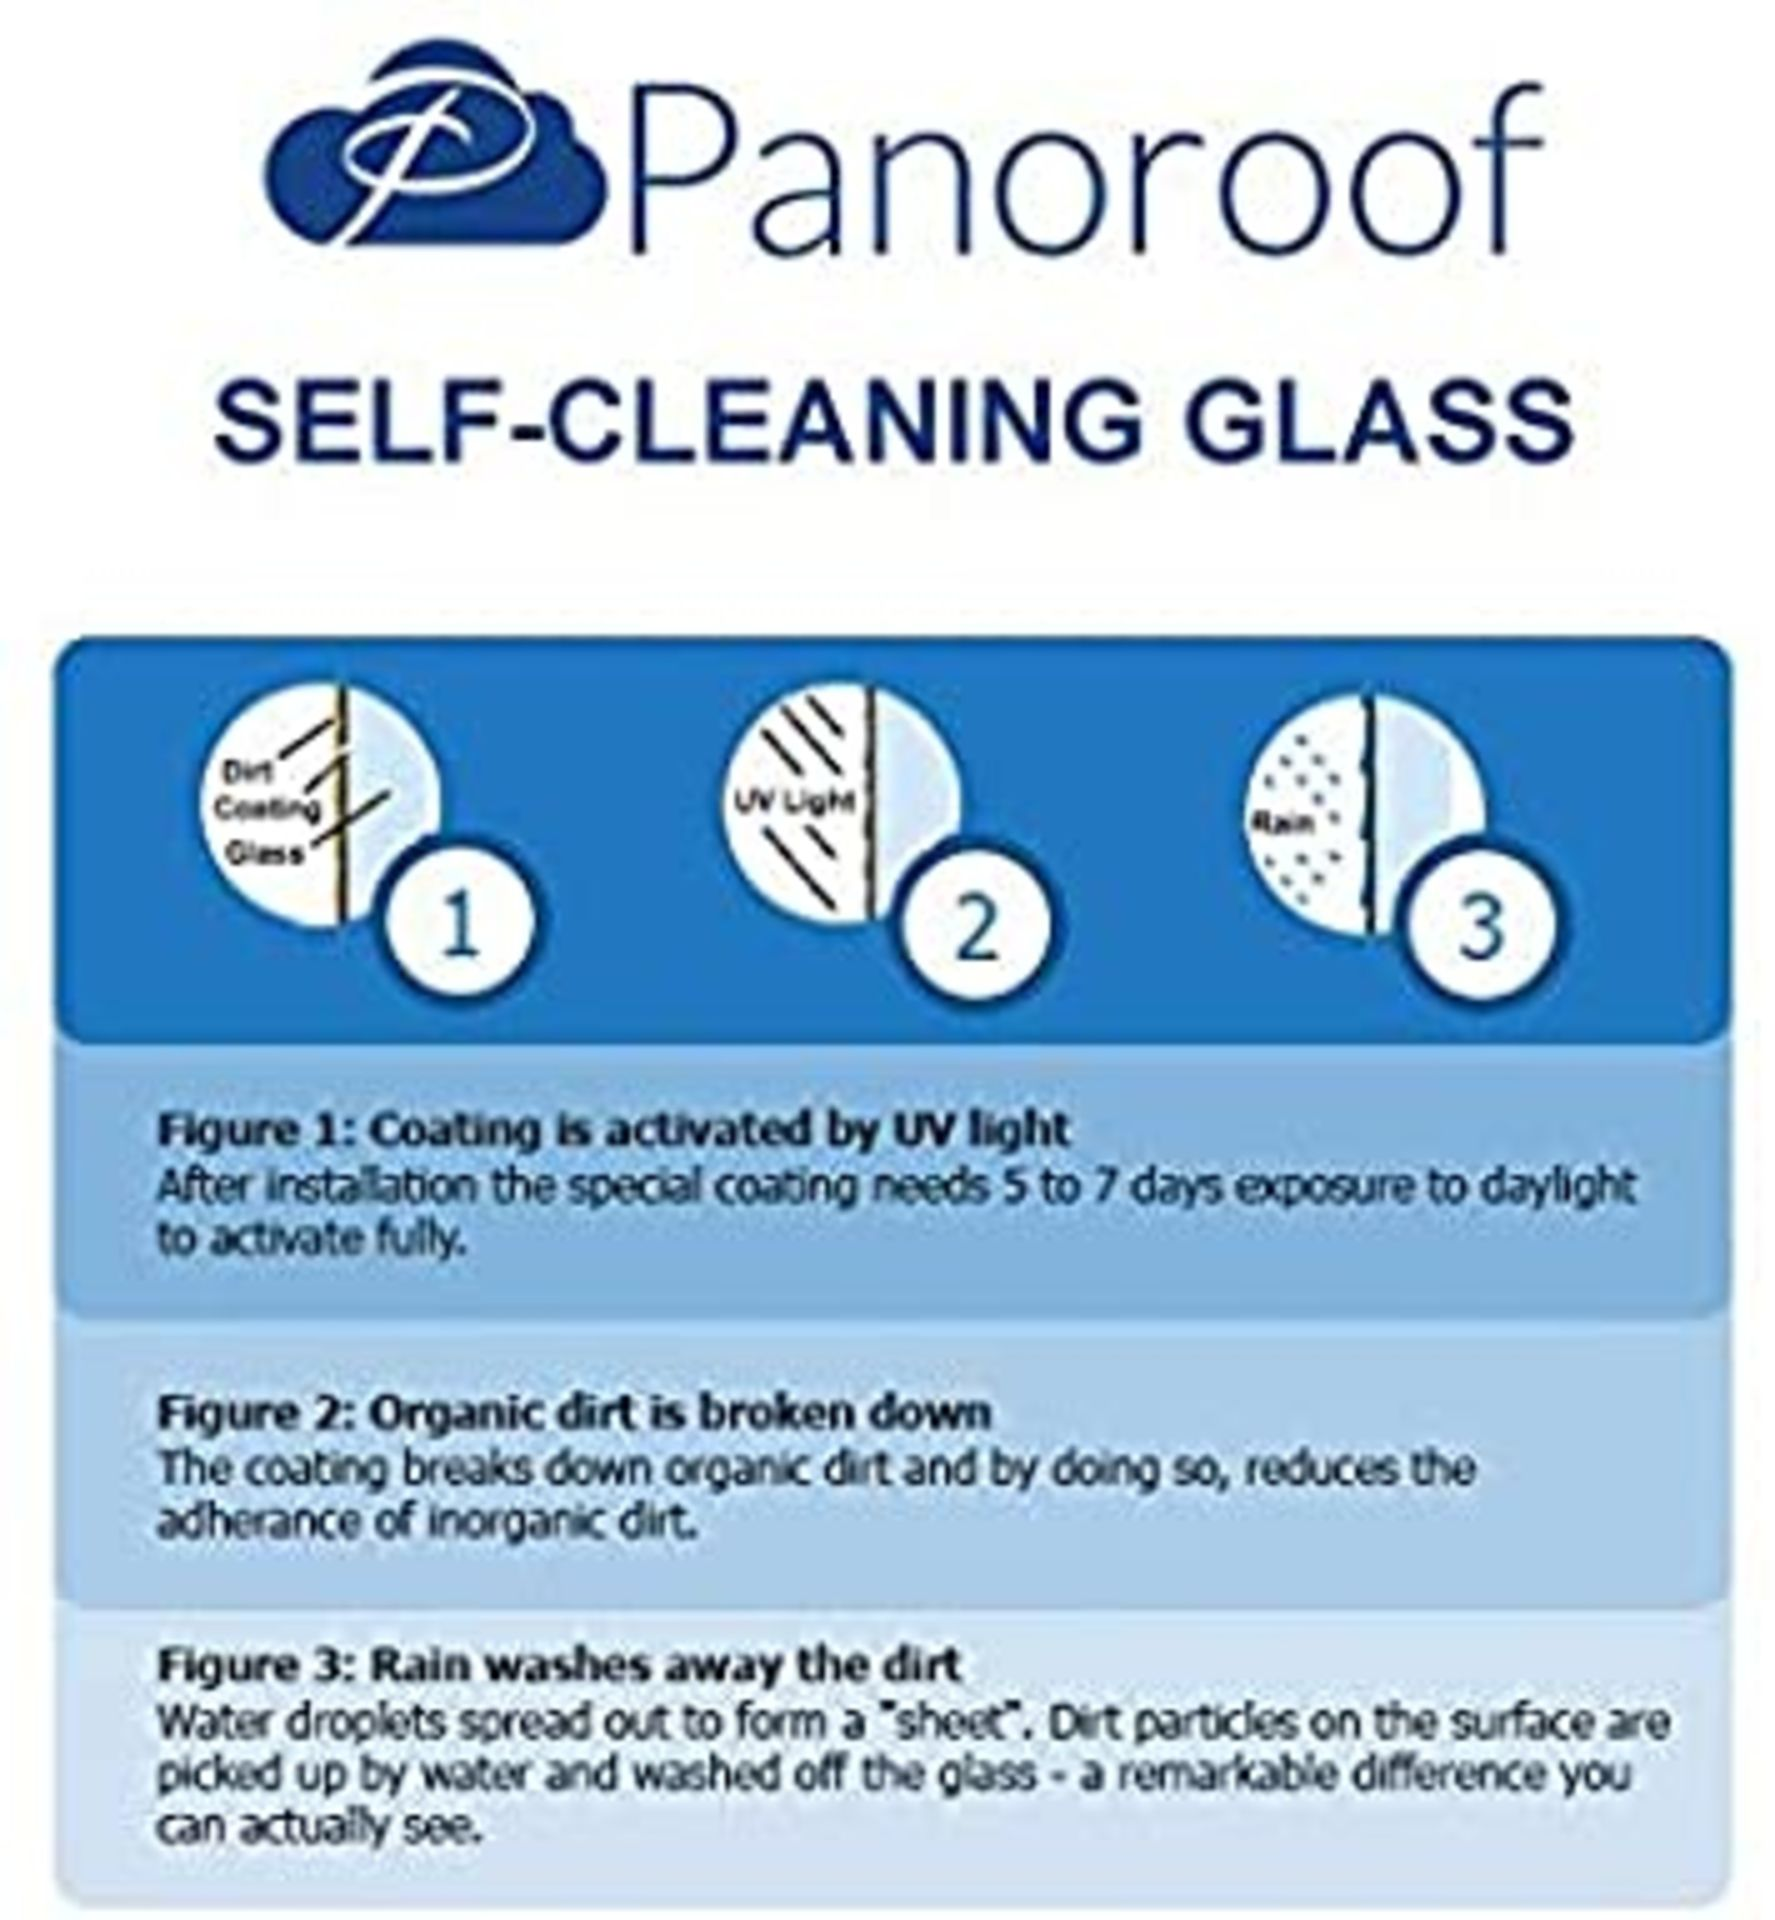 """""""""""""""Panoroof Triple Glazed Self Cleaning 600x900mm (inside Size Visable glass area) Seamless Glass - Image 6 of 6"""